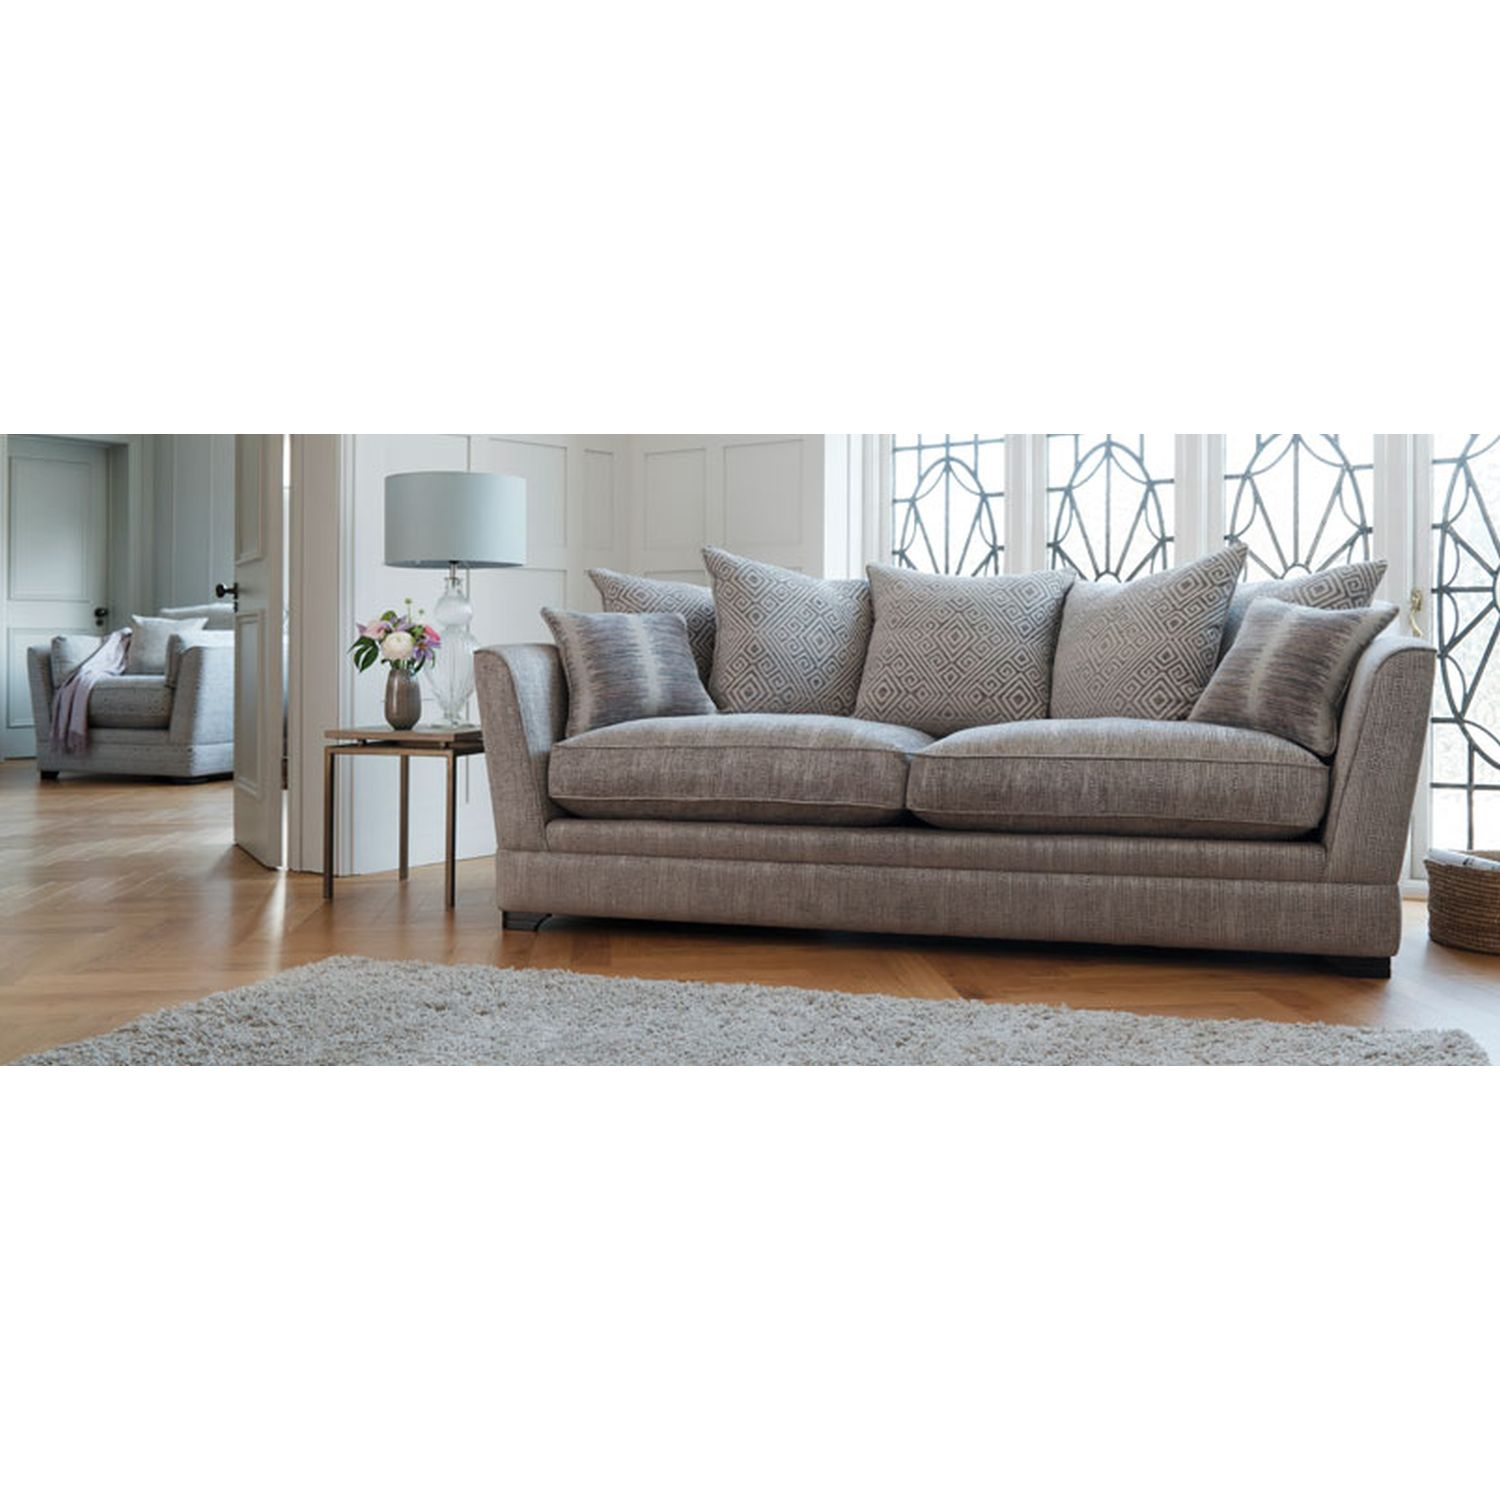 knoll sofas uk lee industries 4 cushion sofa 1296 44 parker sloane chair